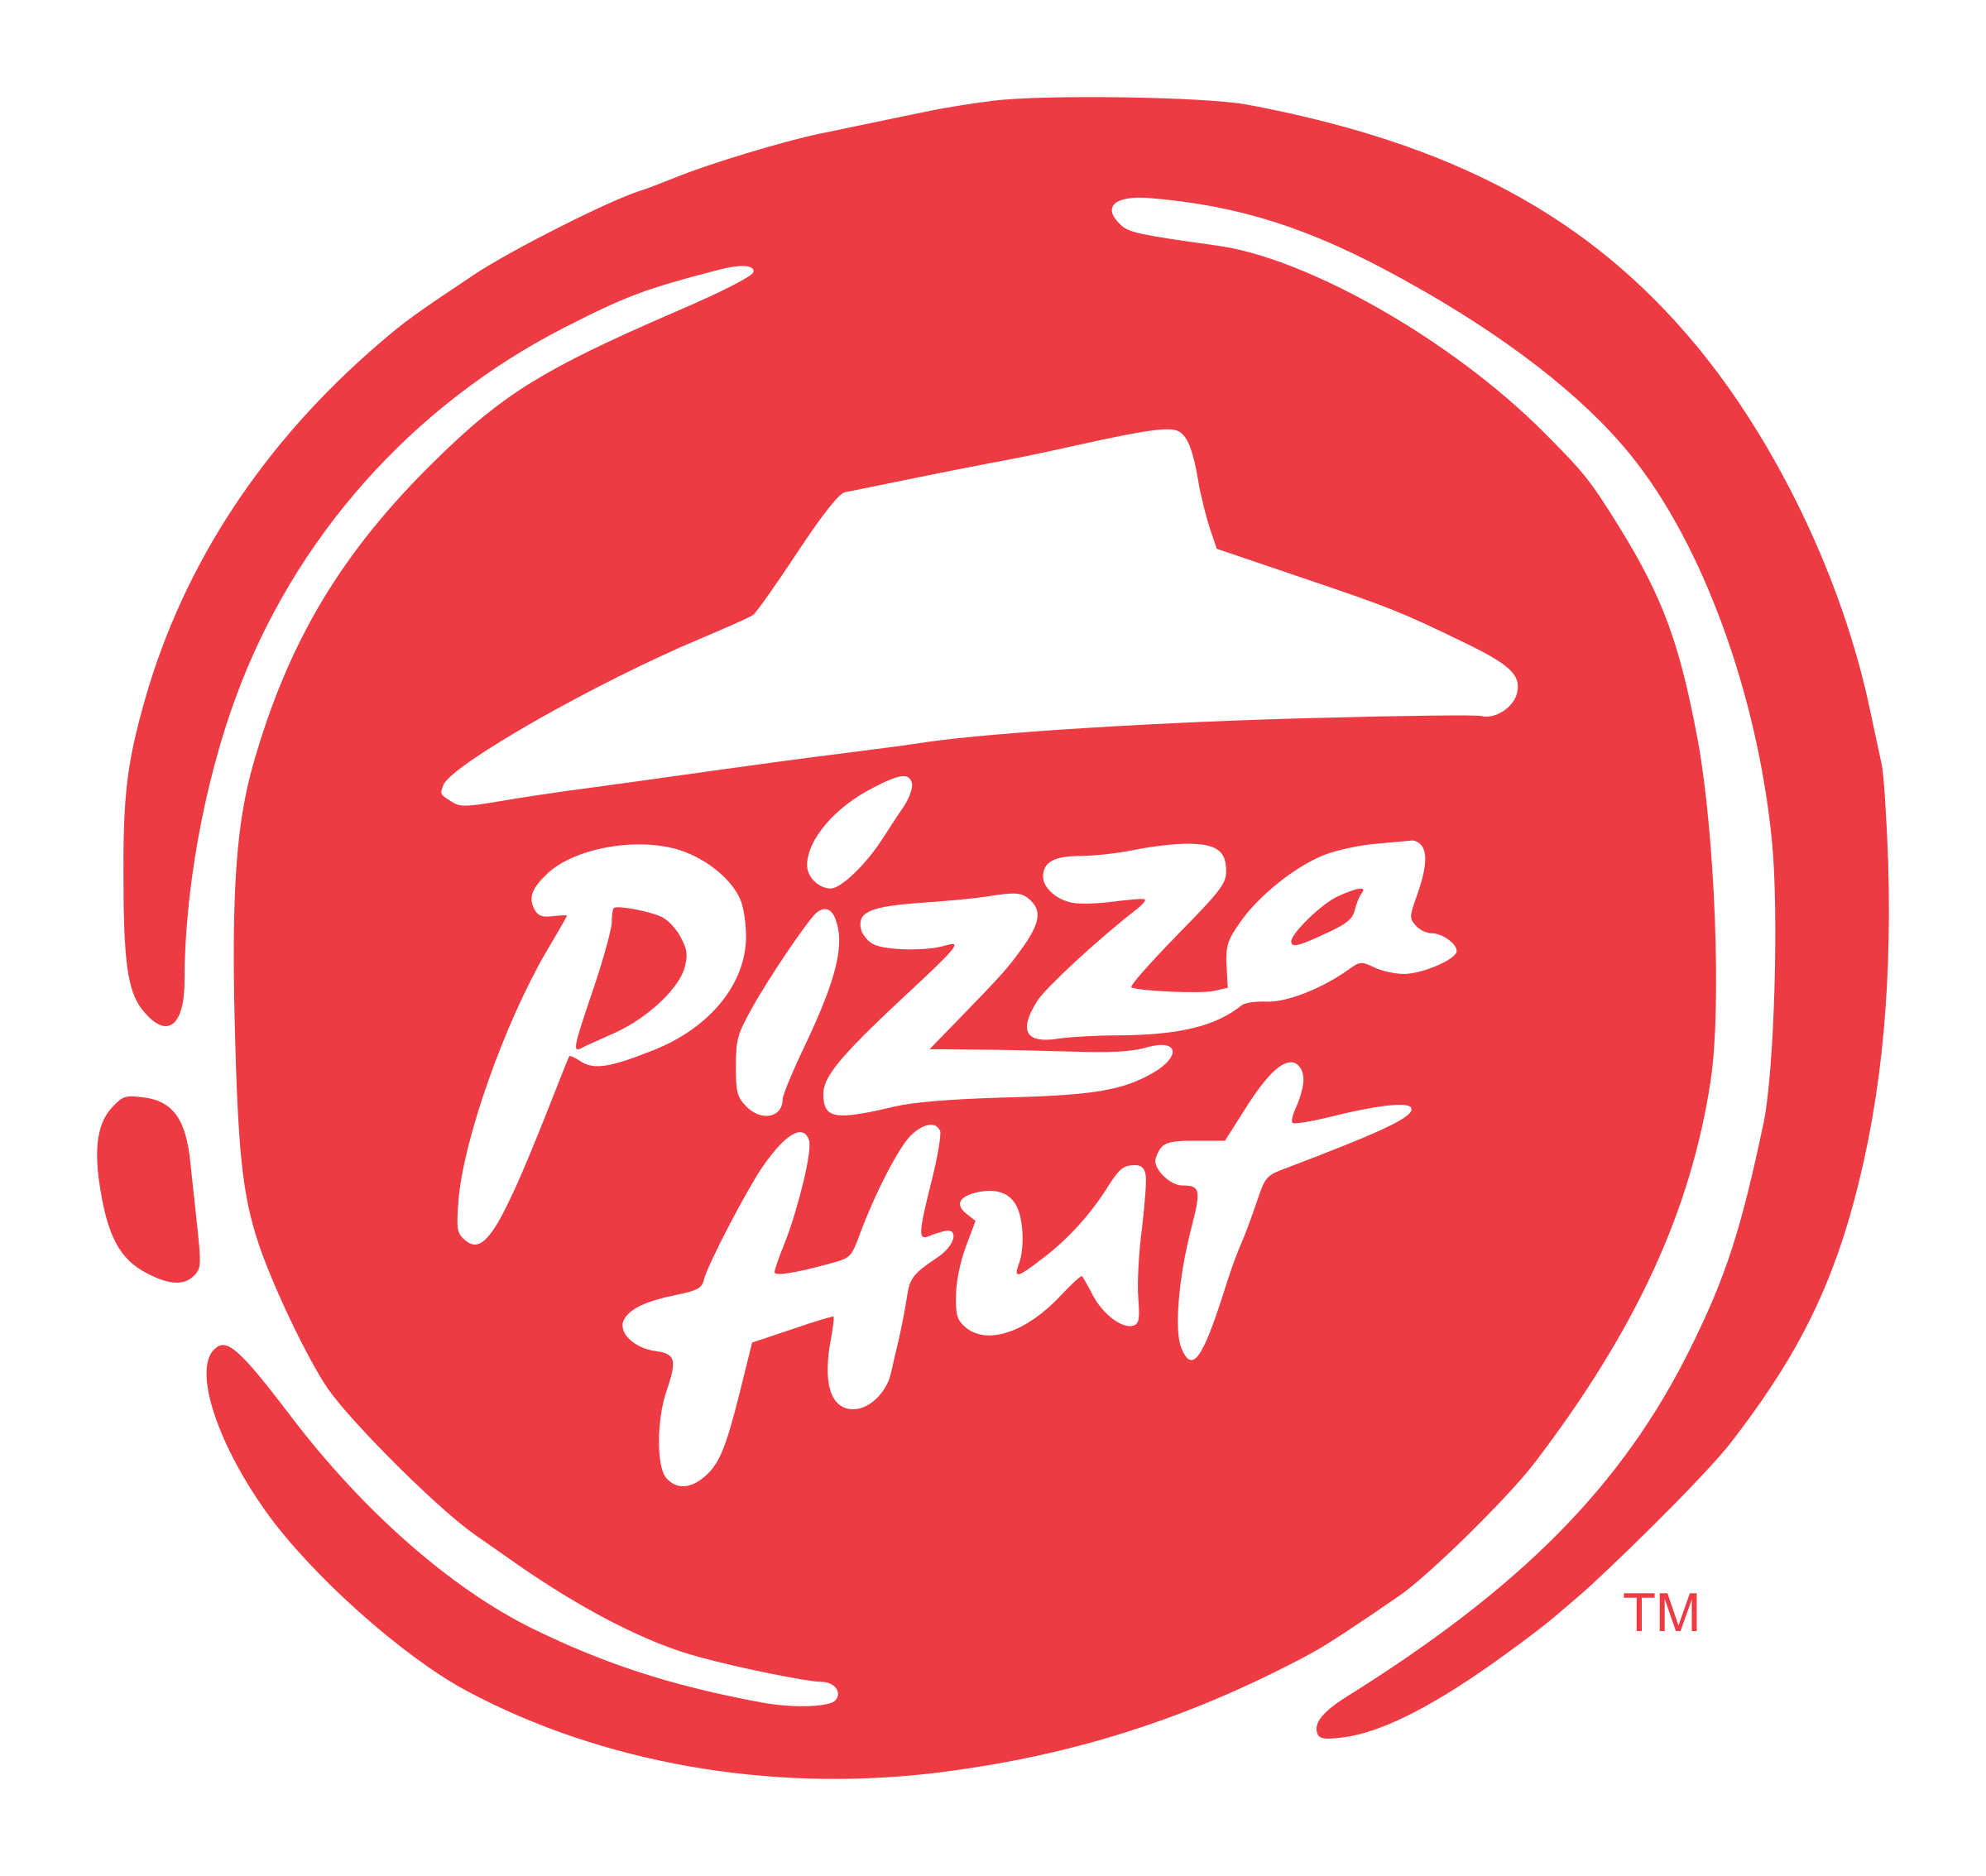 pizza hut logo png transparent svg vector freebie supply rh freebiesupply com pizza hut logo vector free download pizza hut logo vector free download